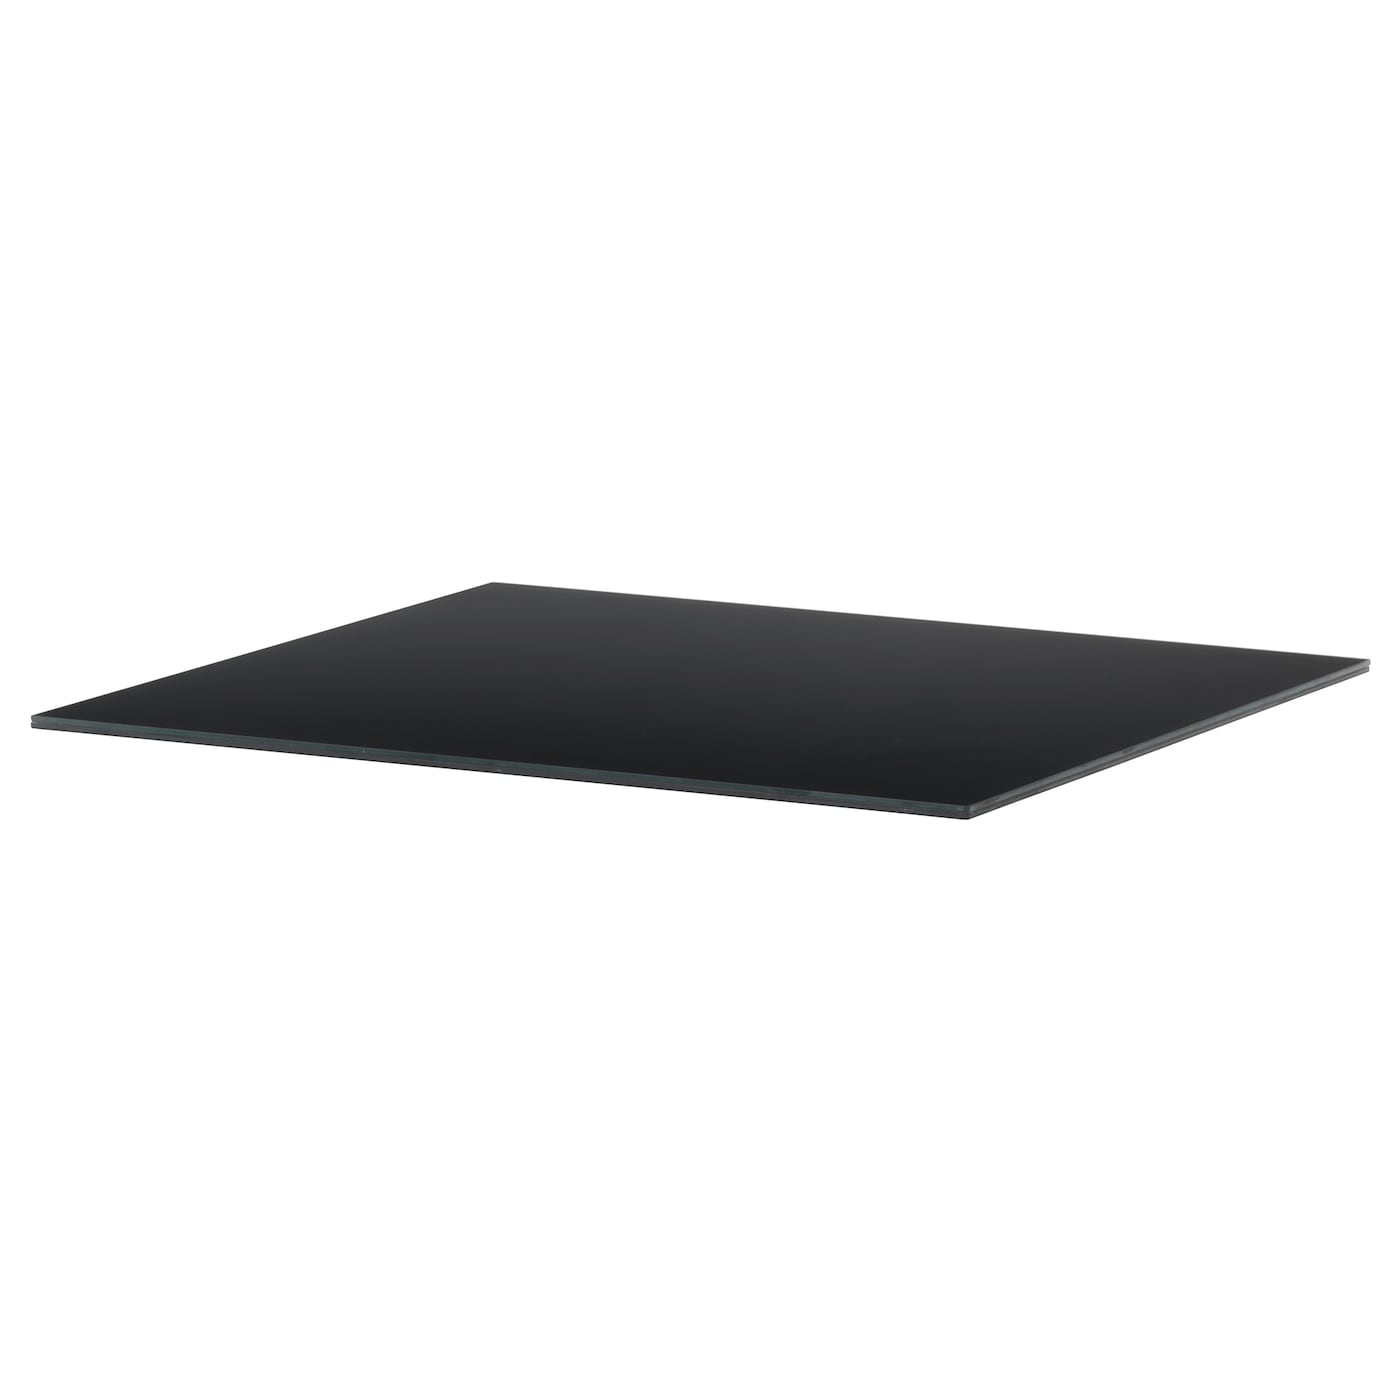 IKEA SJÄLLAND table top The table top in laminated glass is stain resistant and easy to clean.